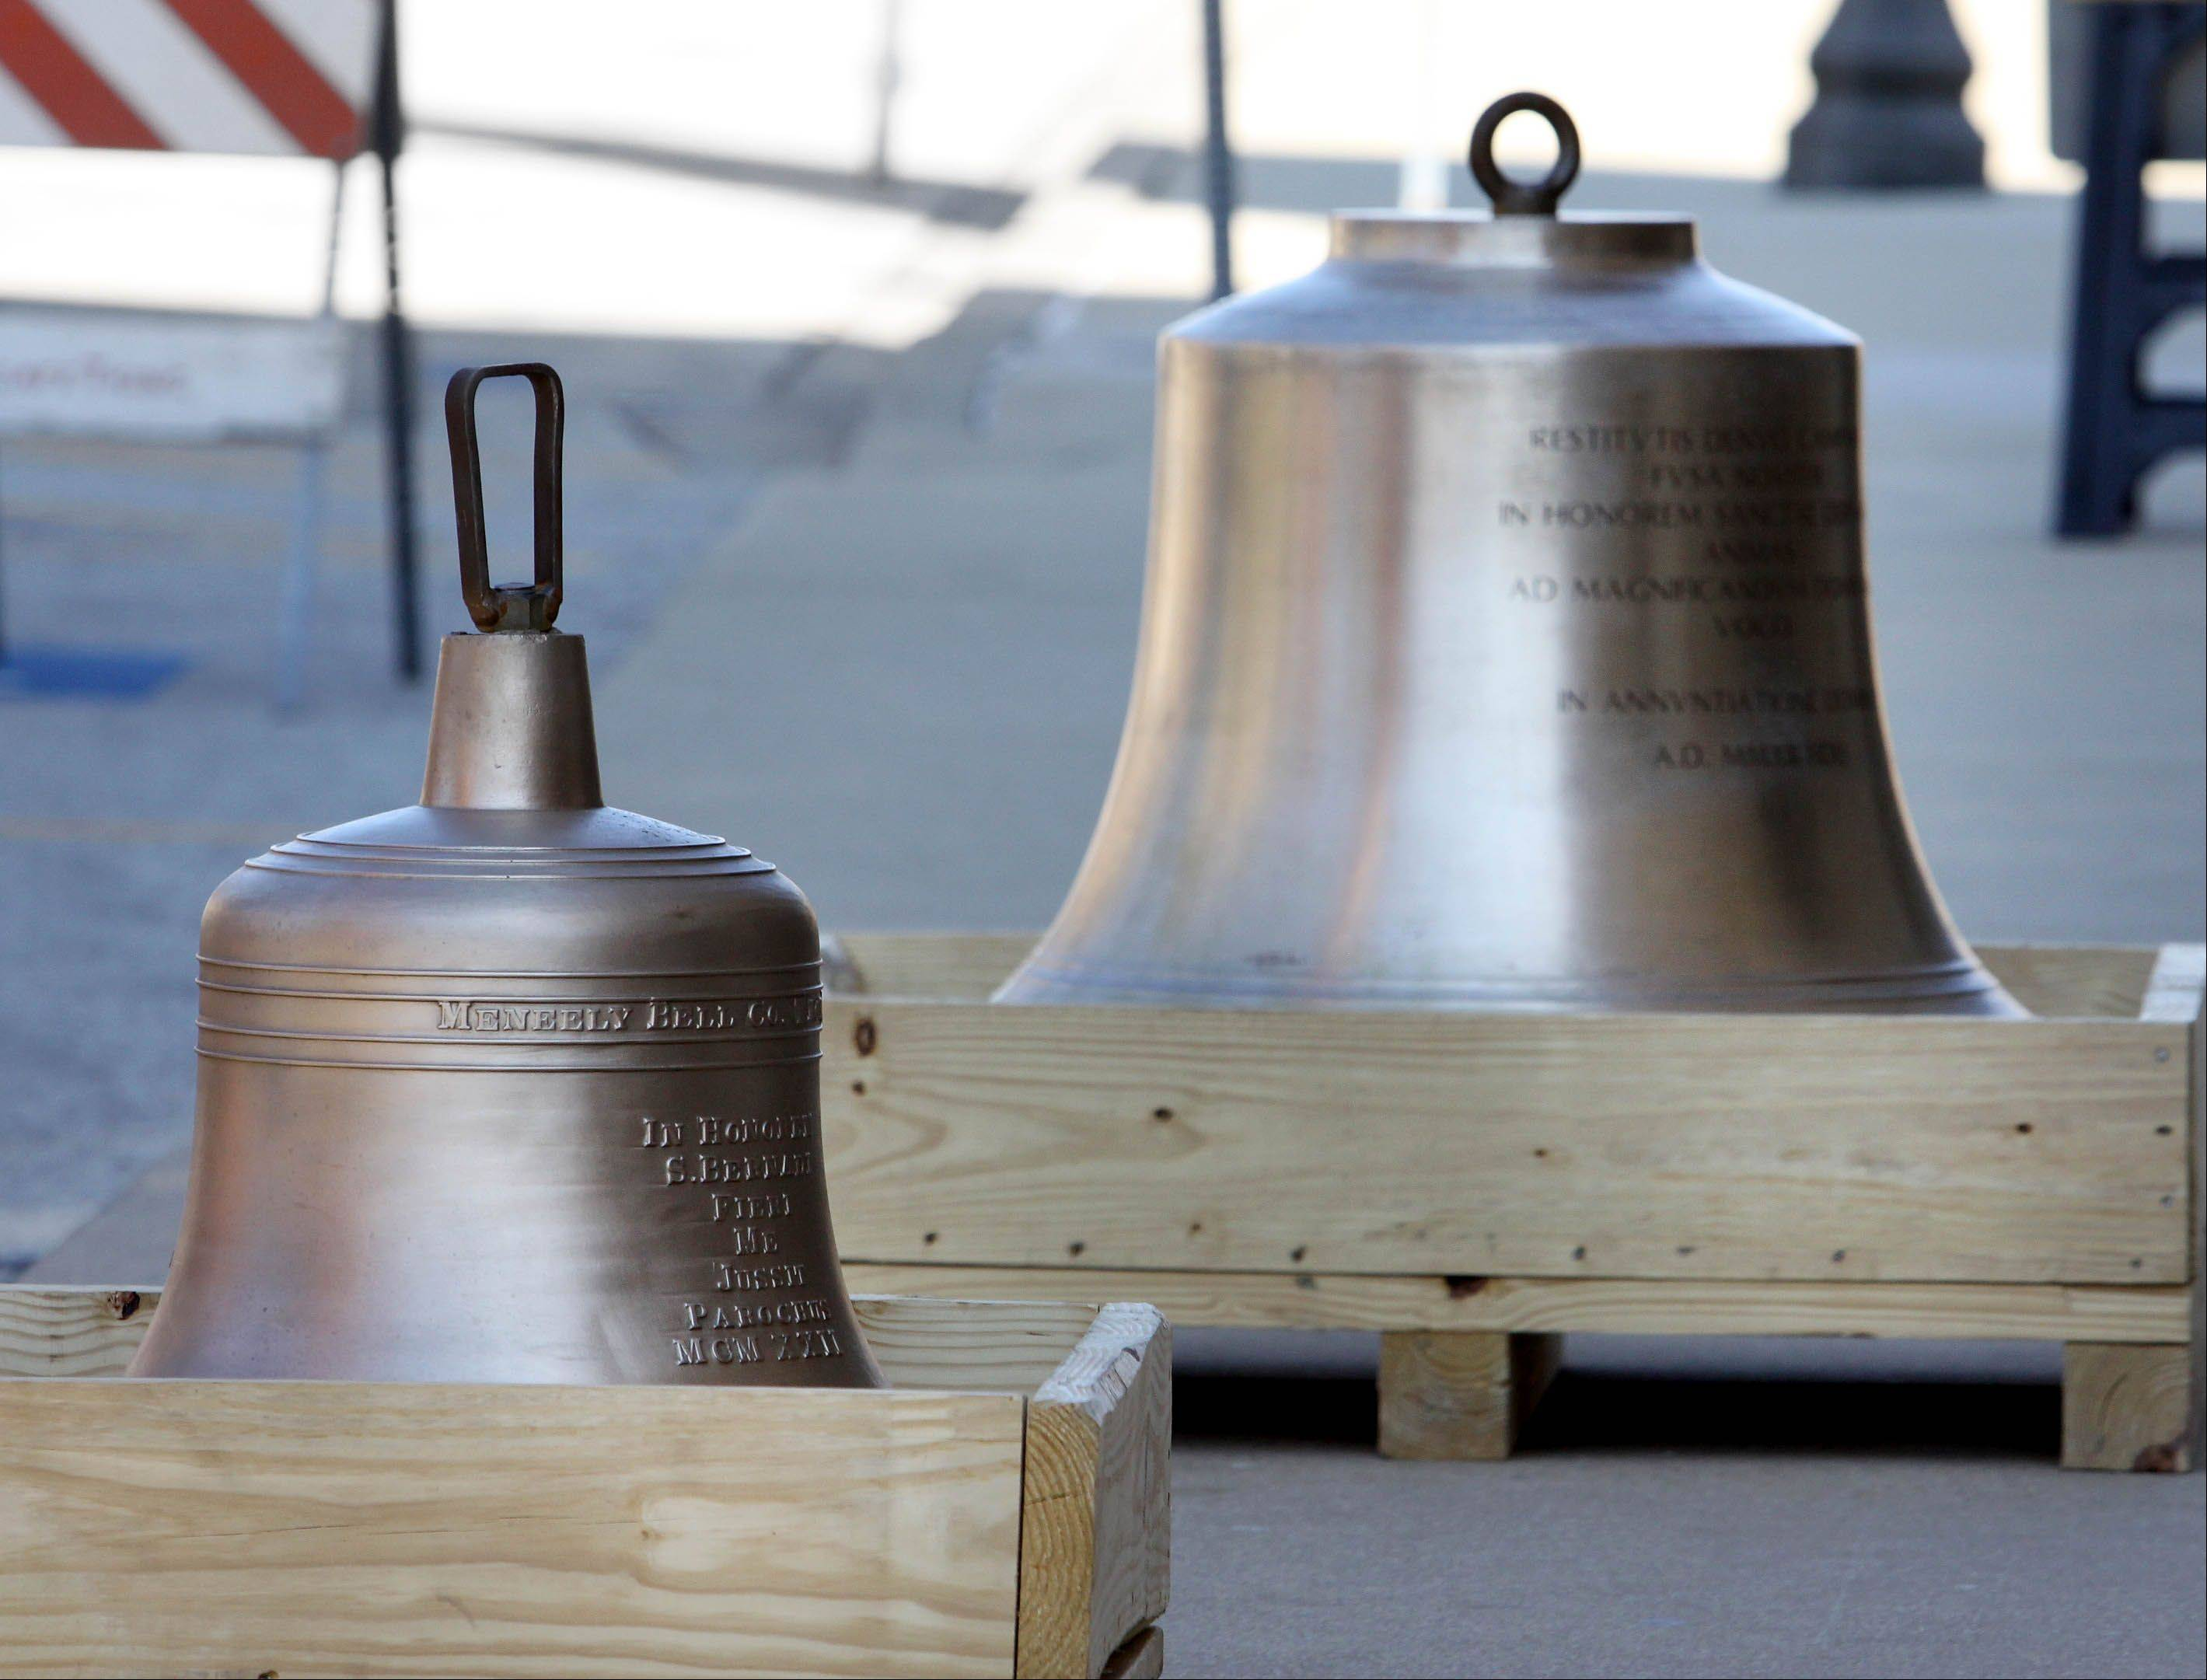 Newly cast and refurbished church bells were hoisted Thursday into the bell tower at Ss. Peter and Paul Catholic Church in Naperville.